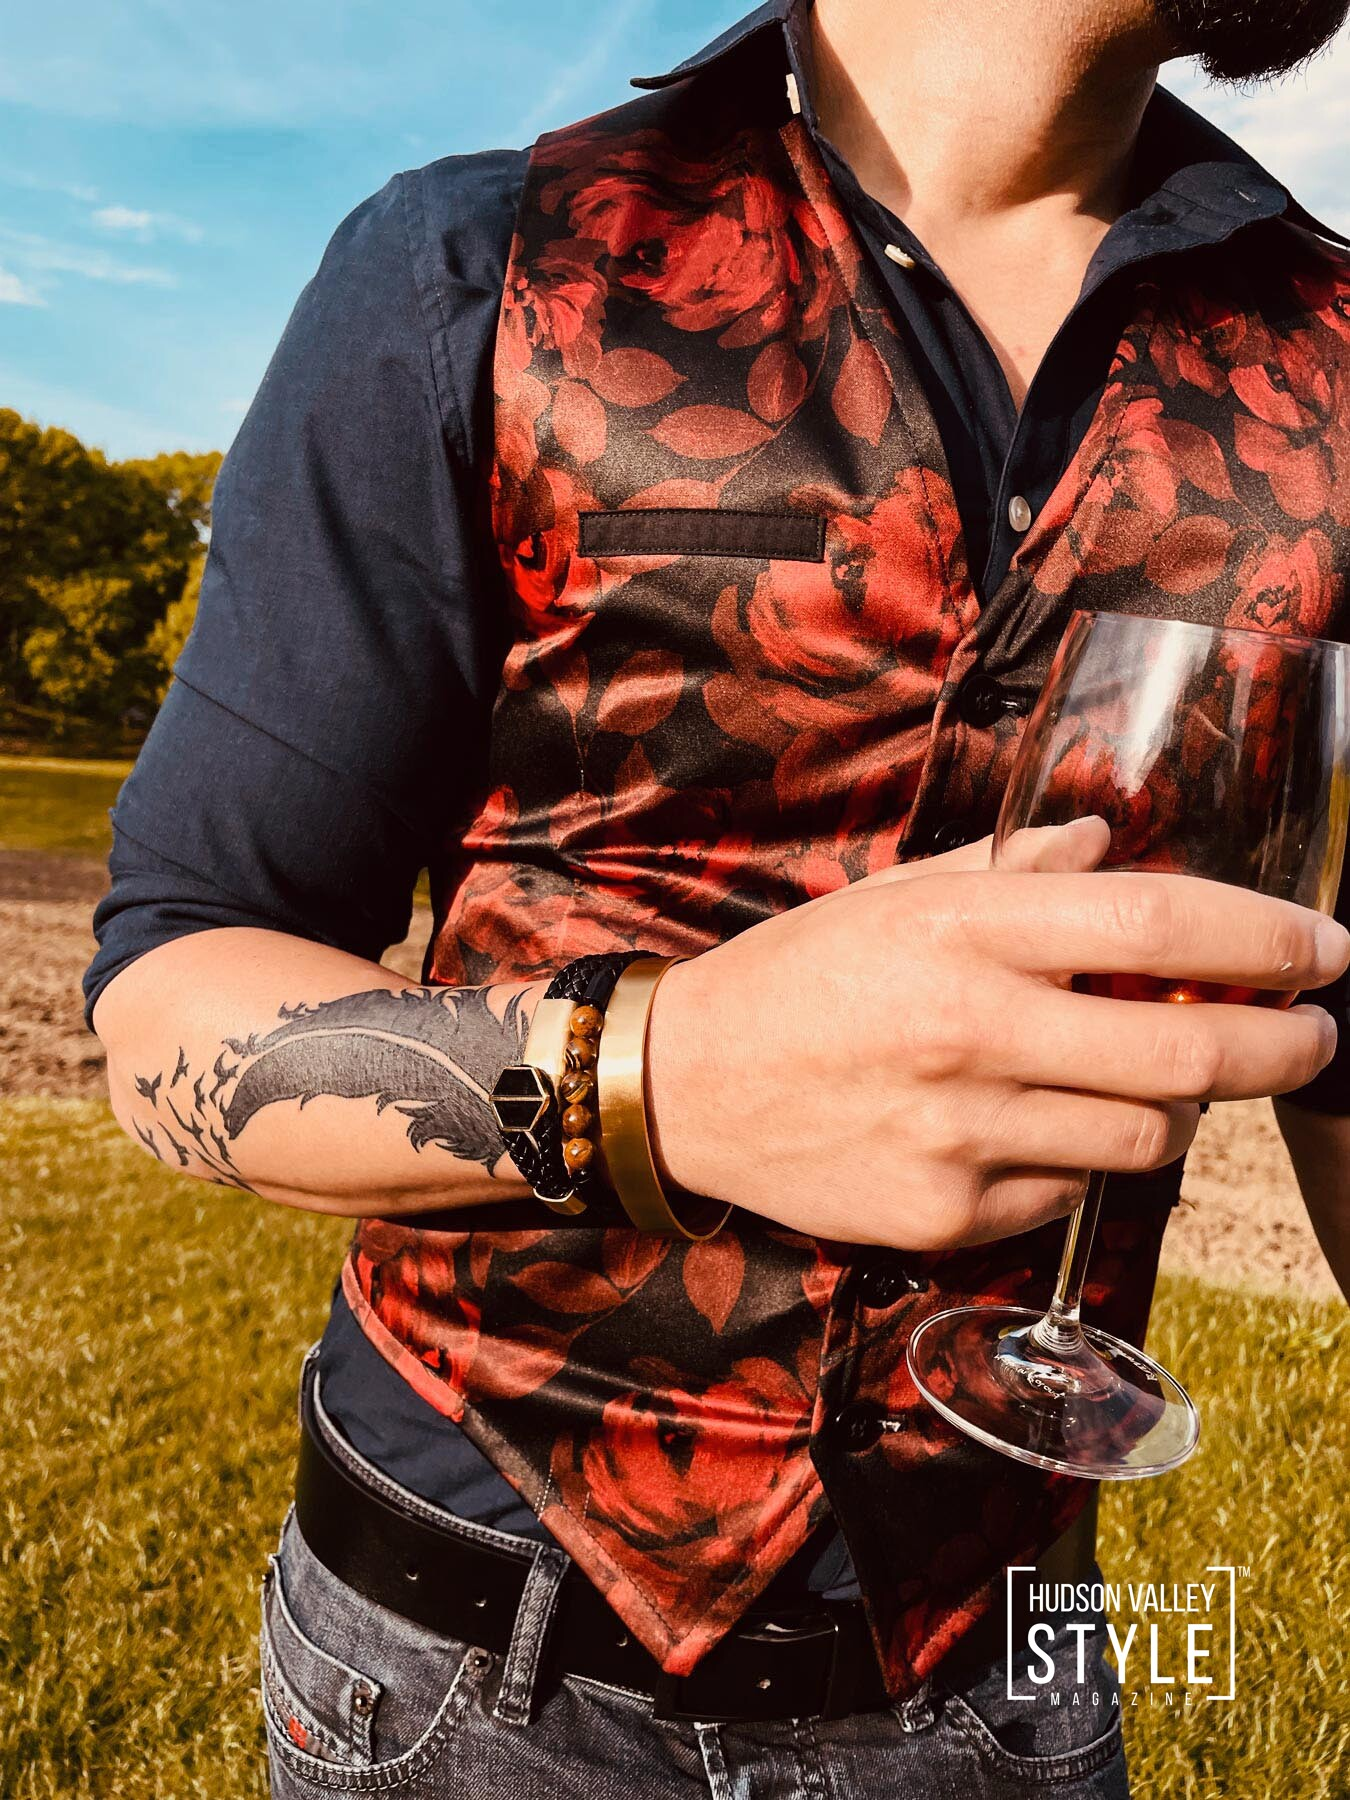 Top 5 Men's Fashion Accessories this Spring – Accessories for Men – Presented by HARD NEW YORK